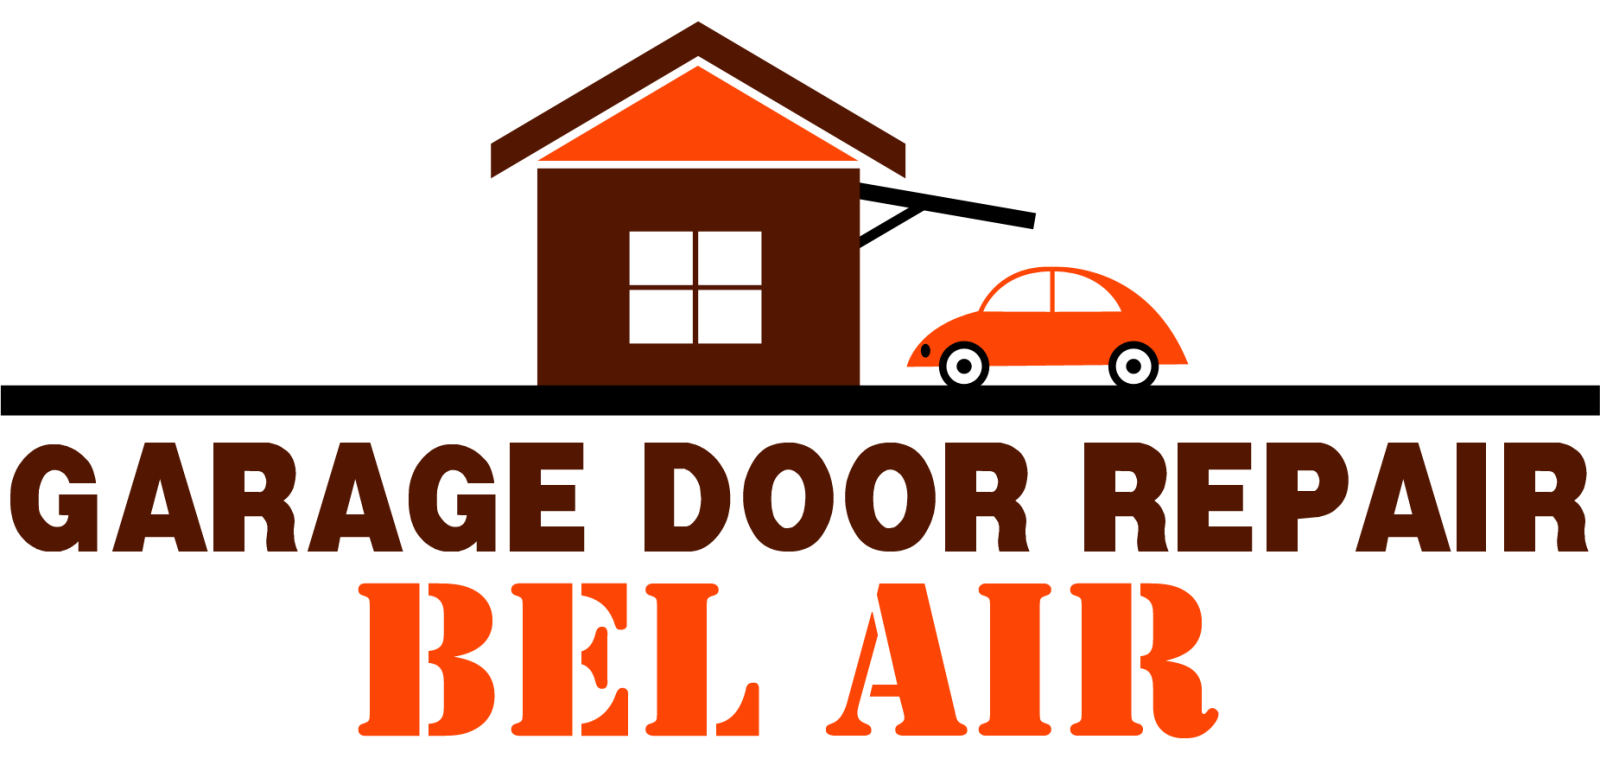 Garage Door Repair Bel Air ,CA